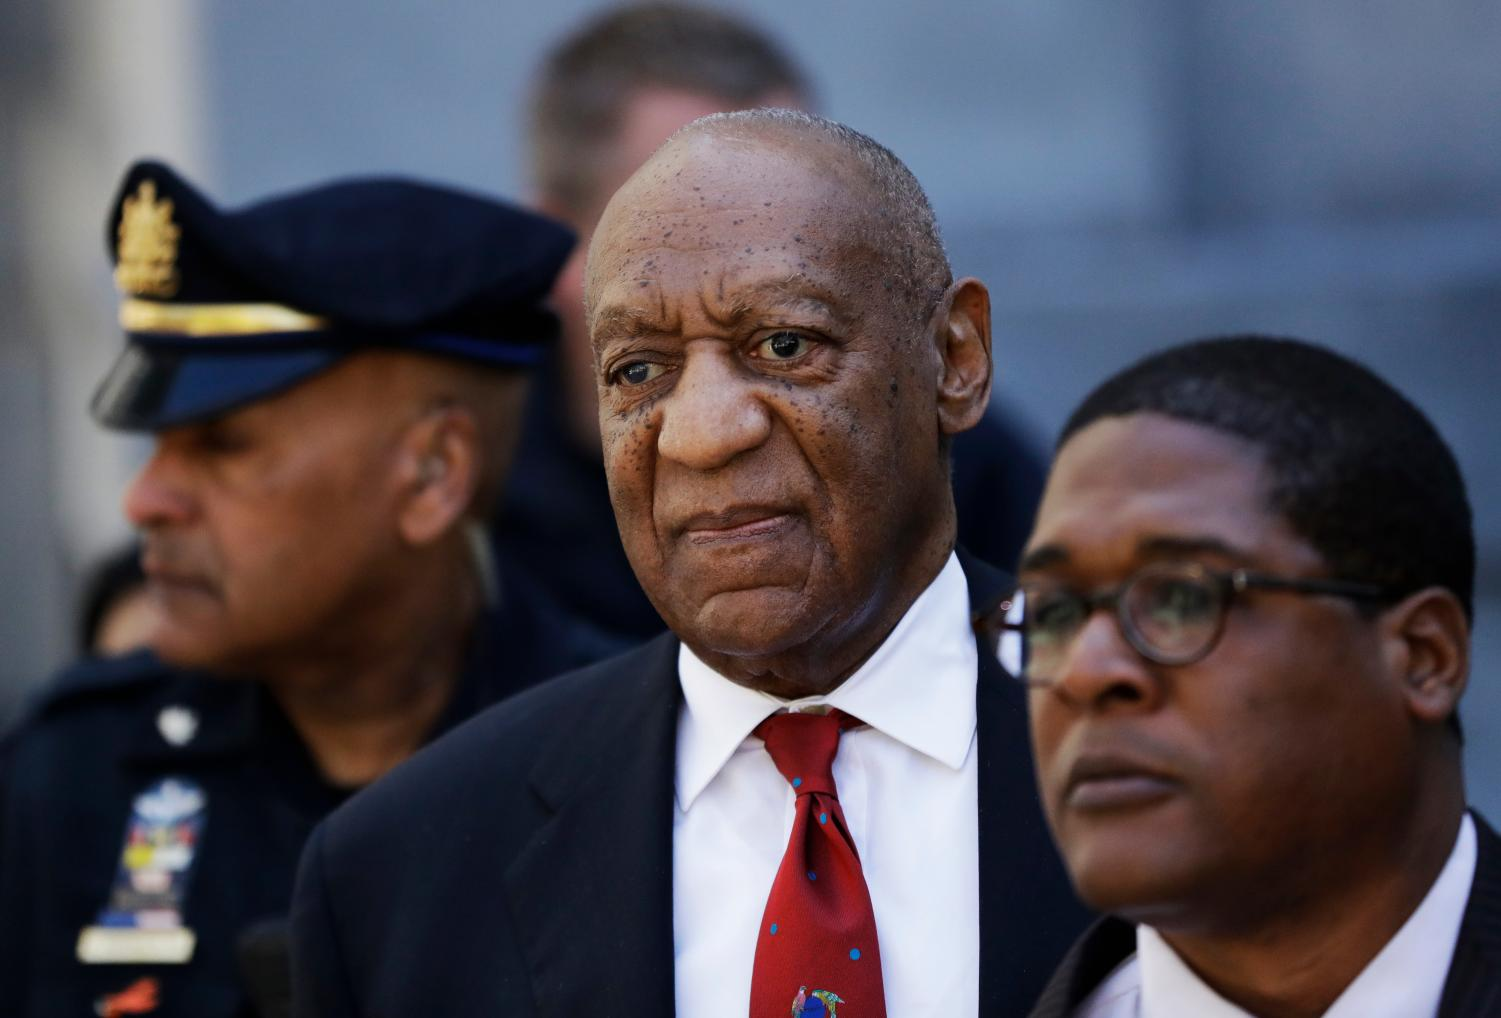 Bill Cosby leaves the courthouse after his conviction on April 26.